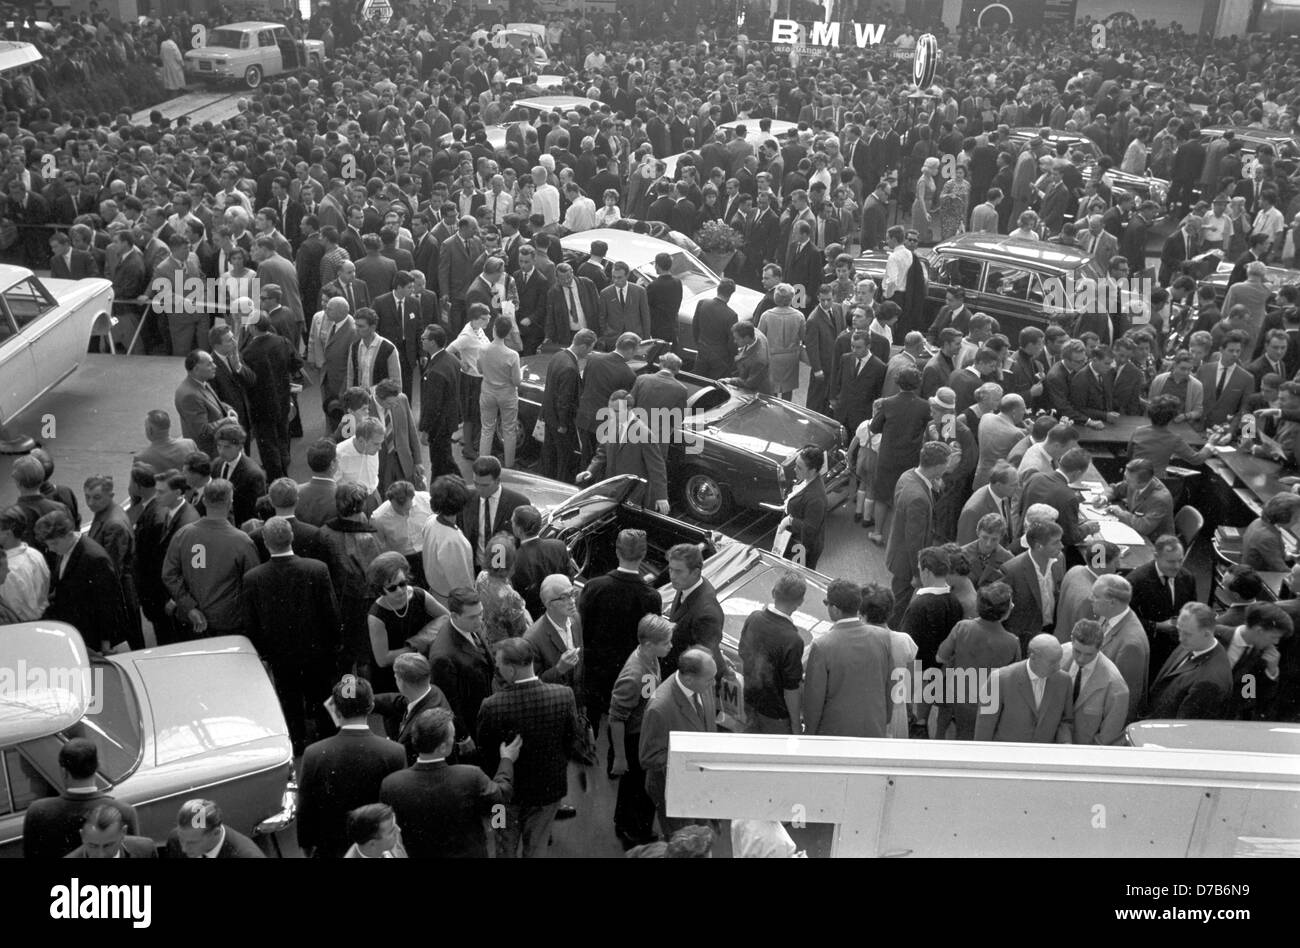 Visitors at the International Automobile Show (IAA) in Frankfurt on the Main on 12 September 1963). Stock Photo